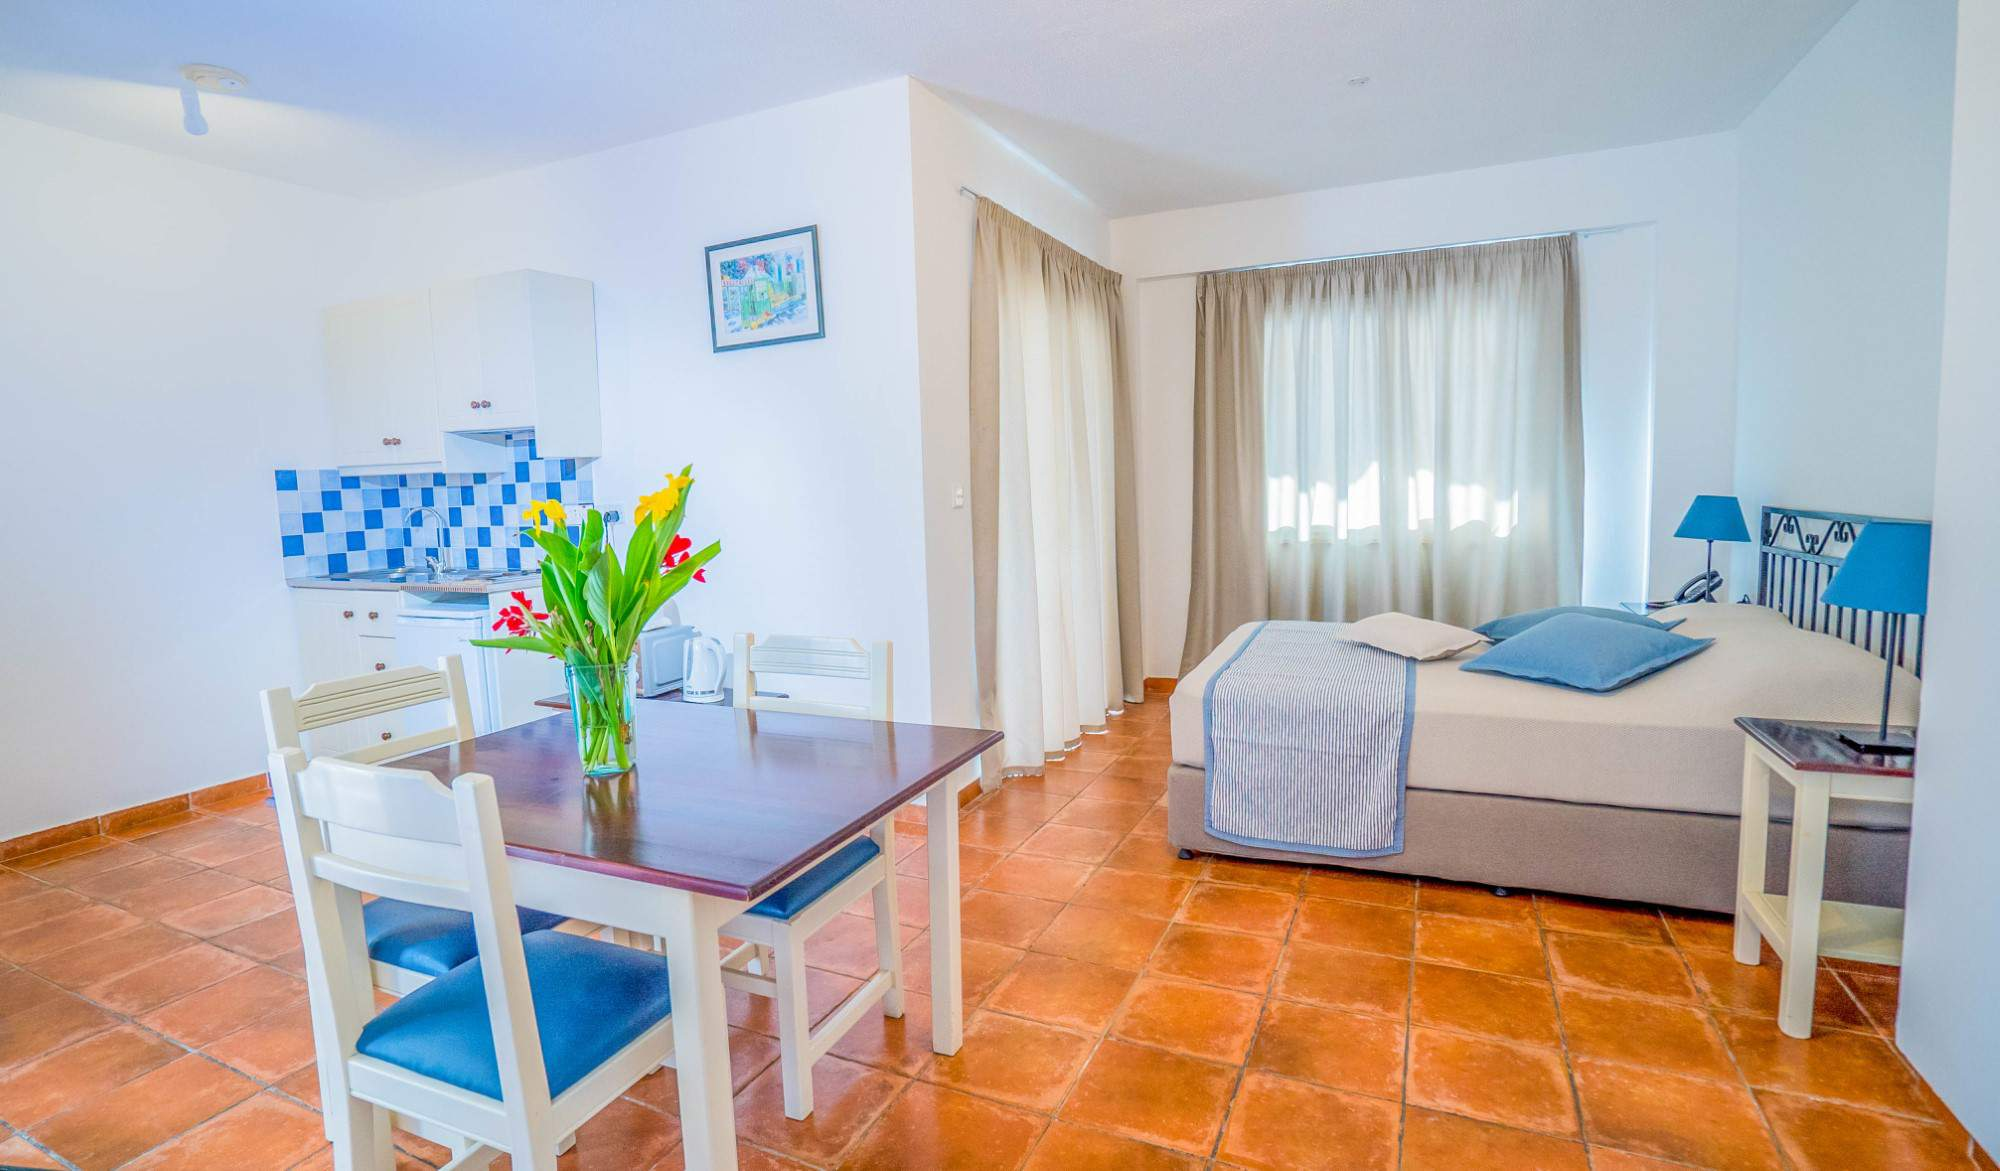 Living room and bedroom from Andreotis Apartments in Protaras